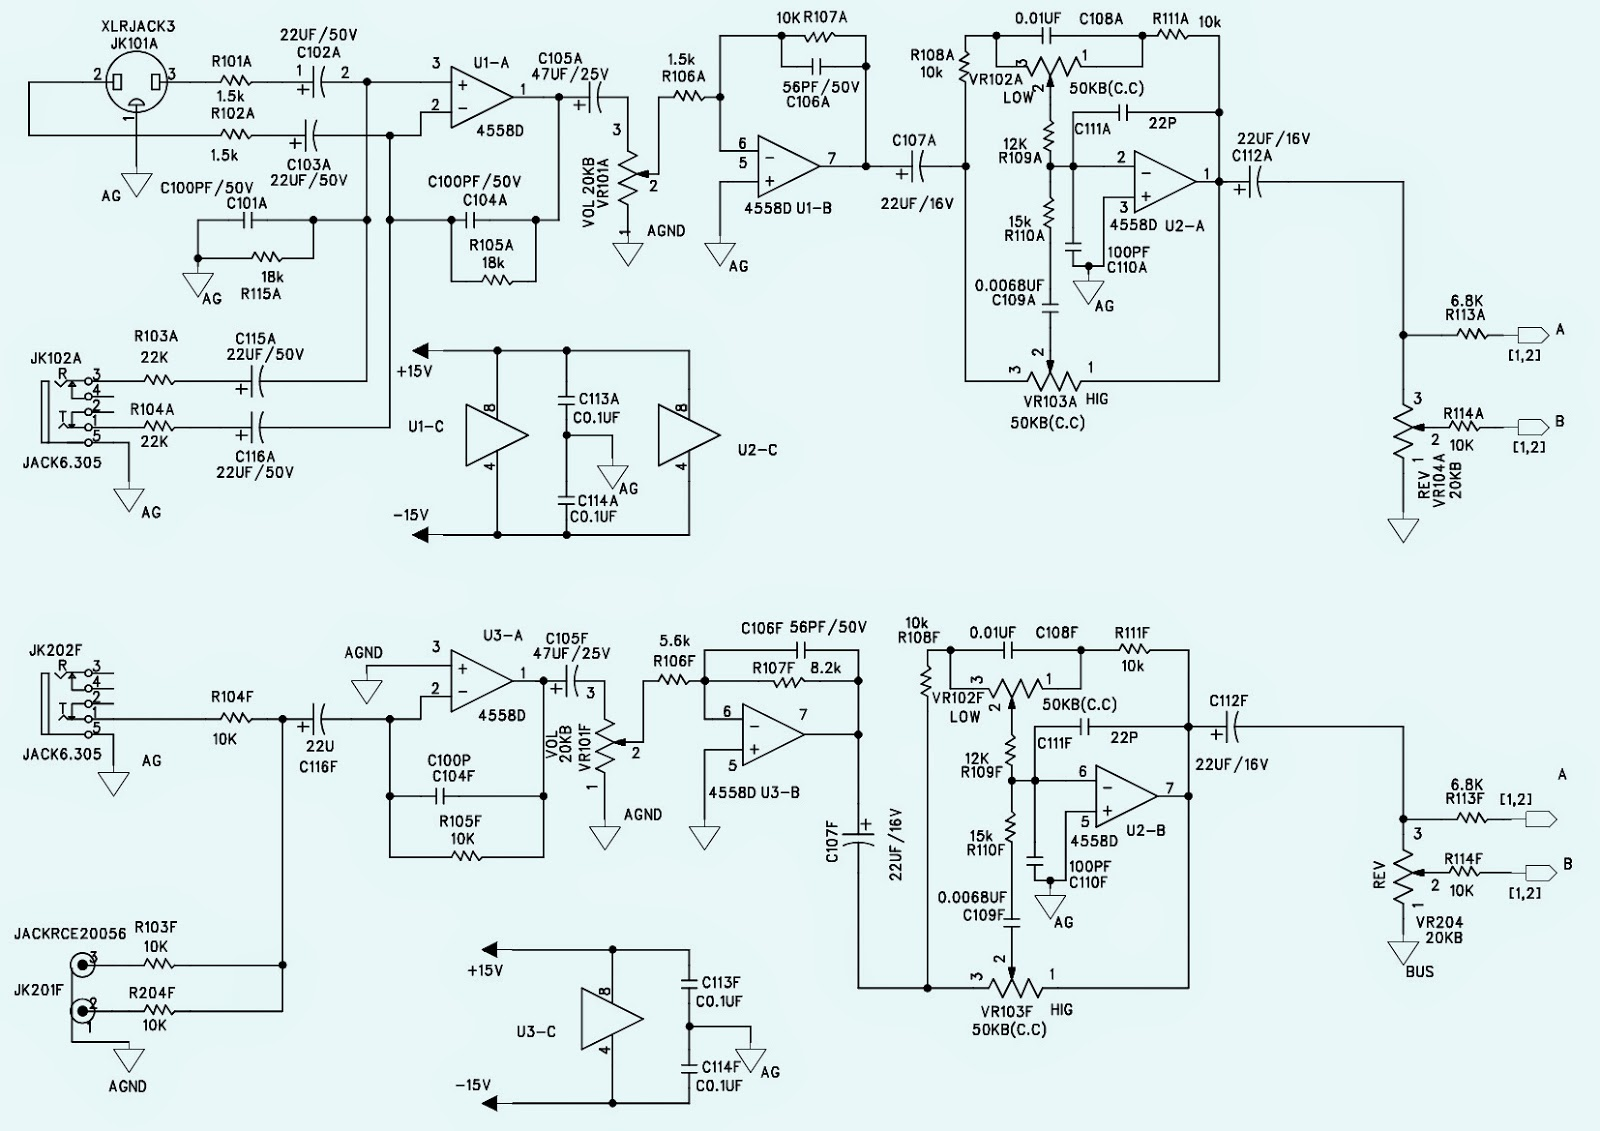 Wharfedale Pro Pm 600 Schematic Professional Audio Mixer 230w X Pcb Circuit Diagram 6